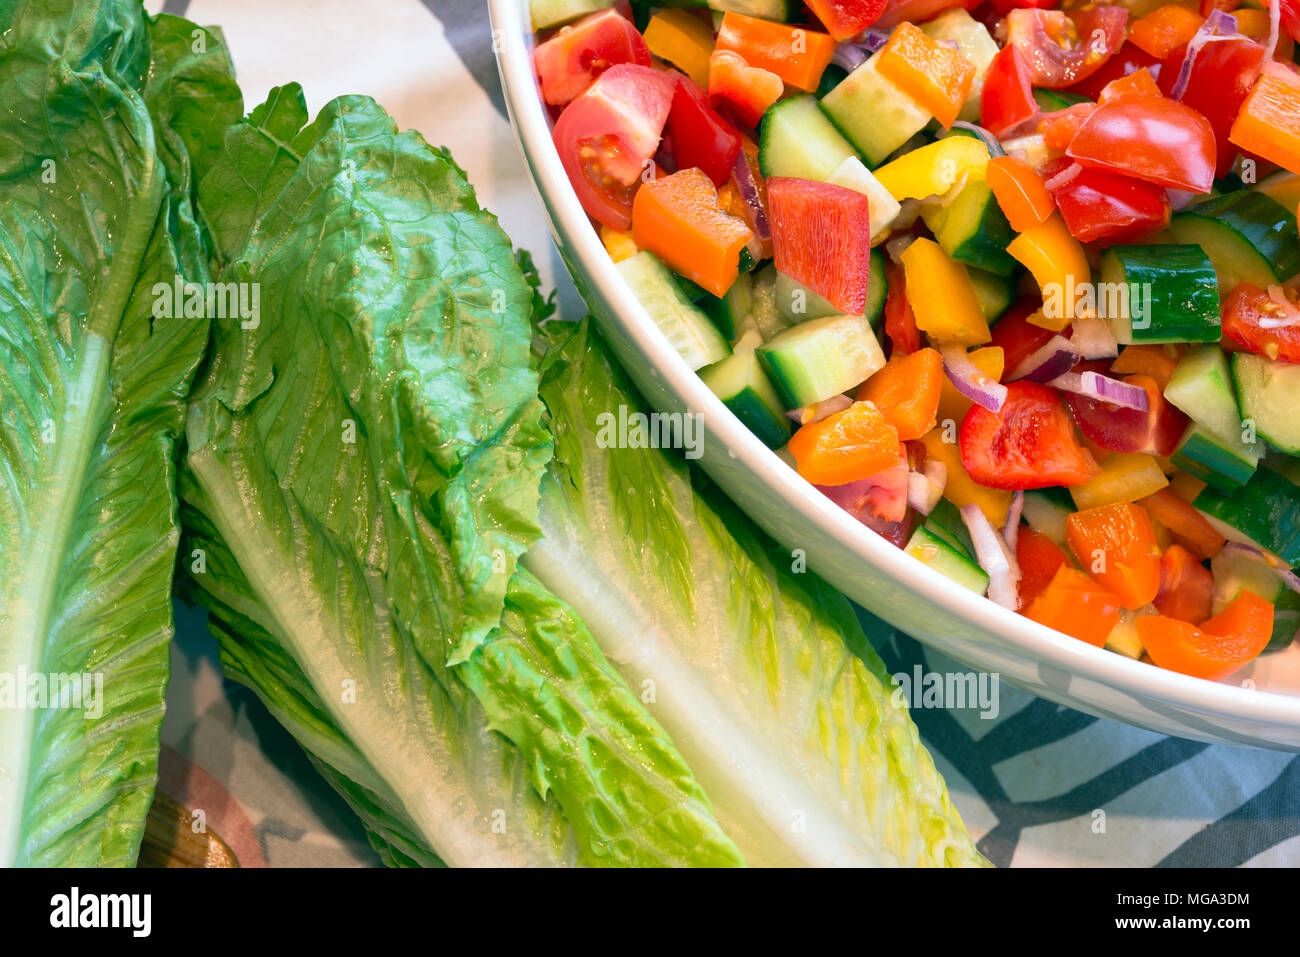 low in calories photos & low in calories images - alamy